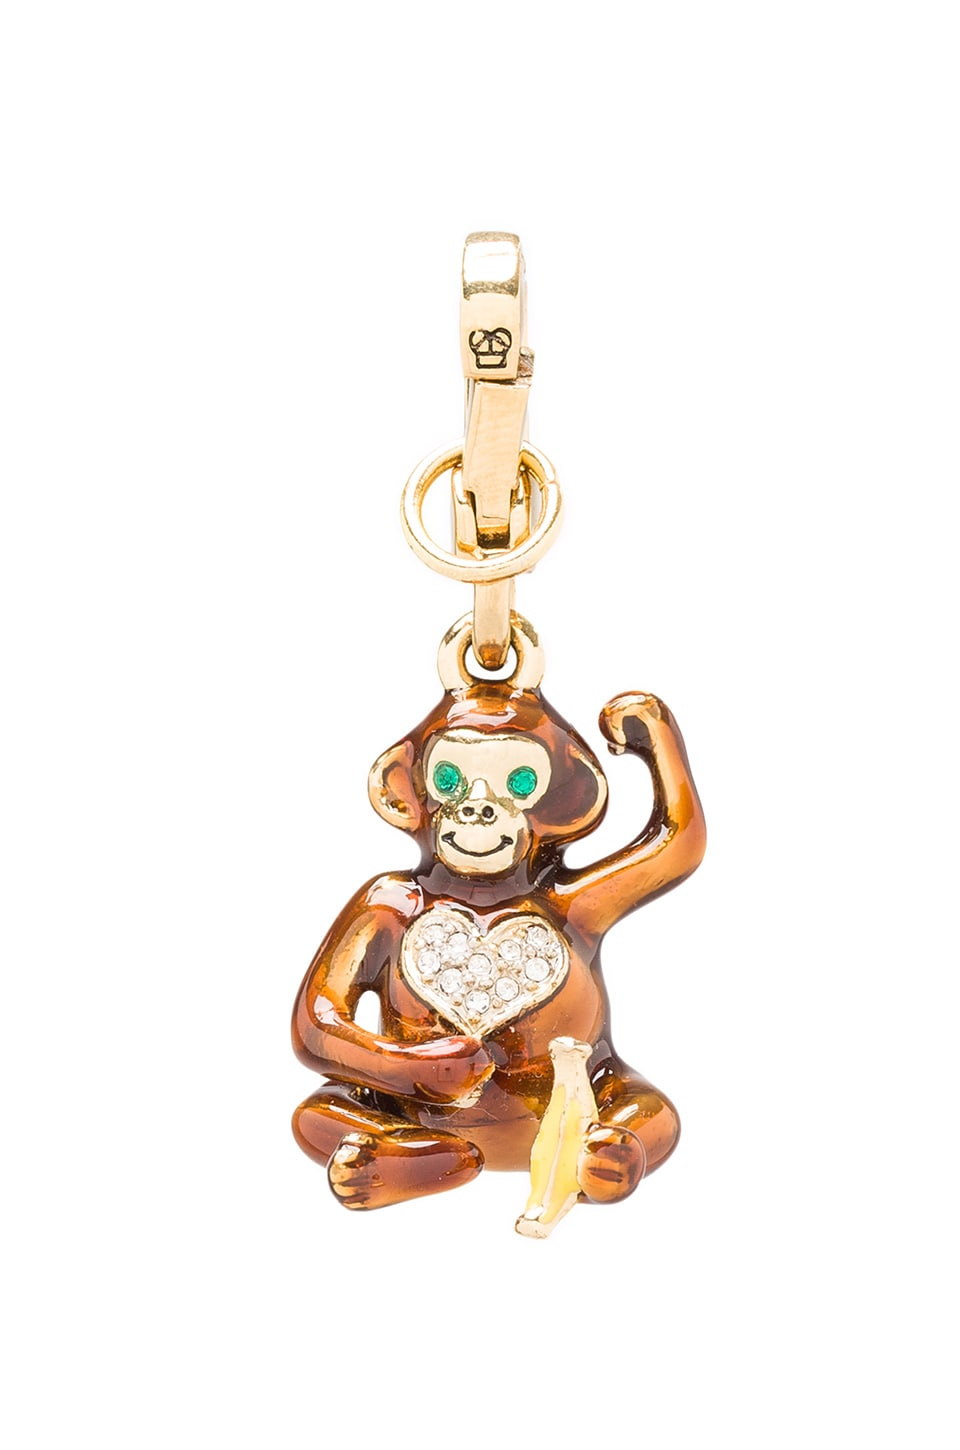 Juicy Couture Monkey Charm in Gold